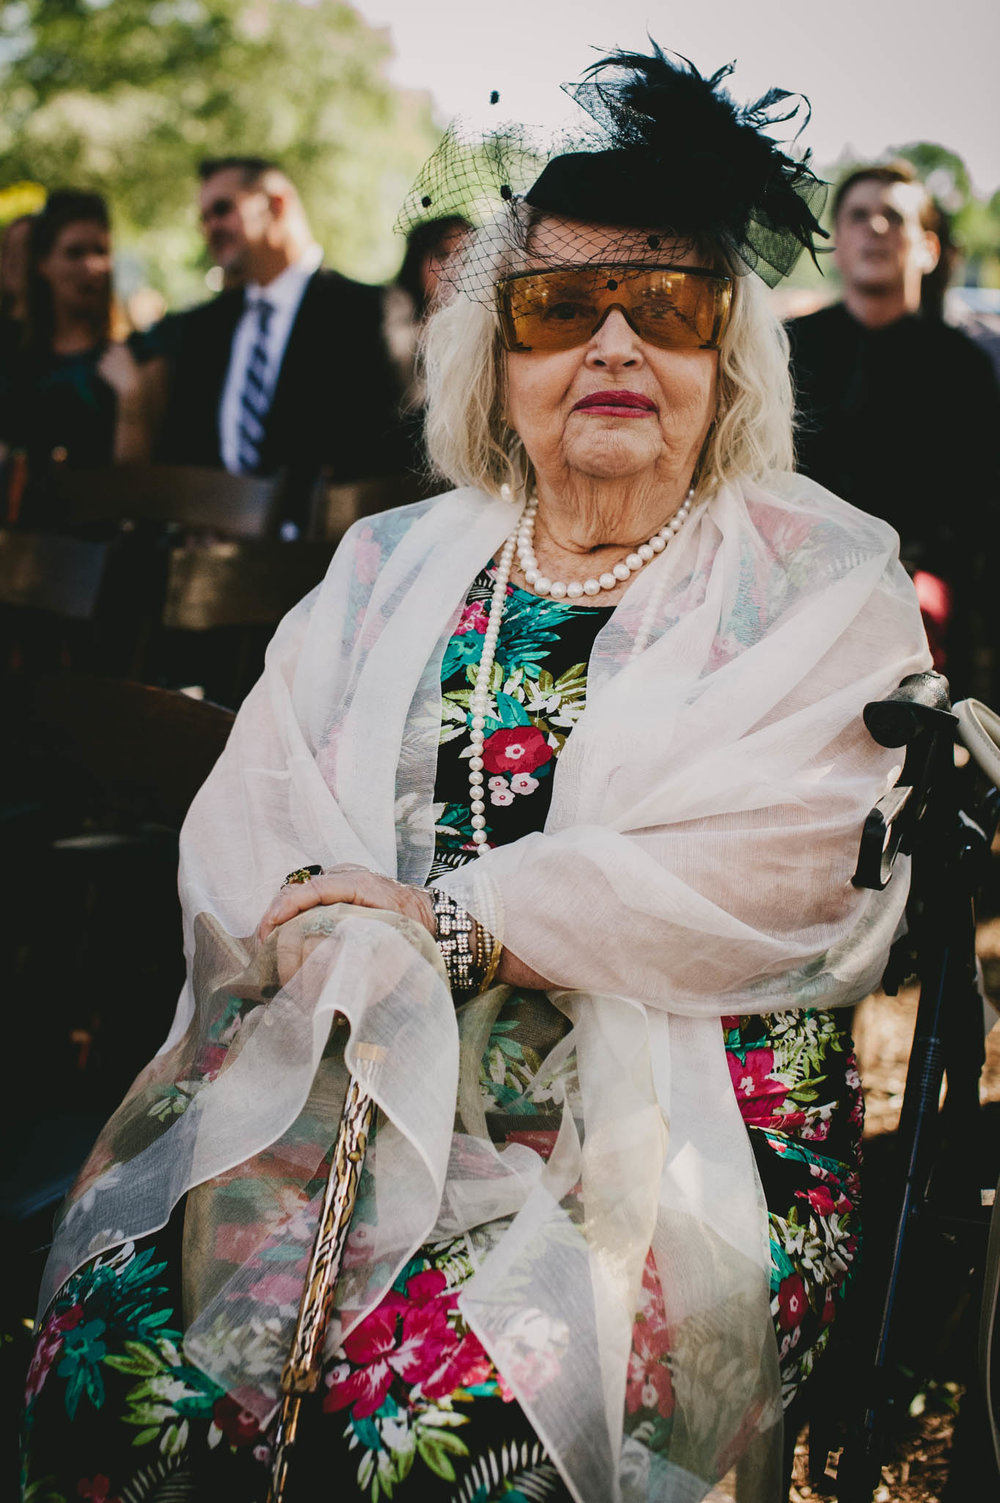 grandmother of the bride stylishly dressed before the wedding ceremony at the Mims House